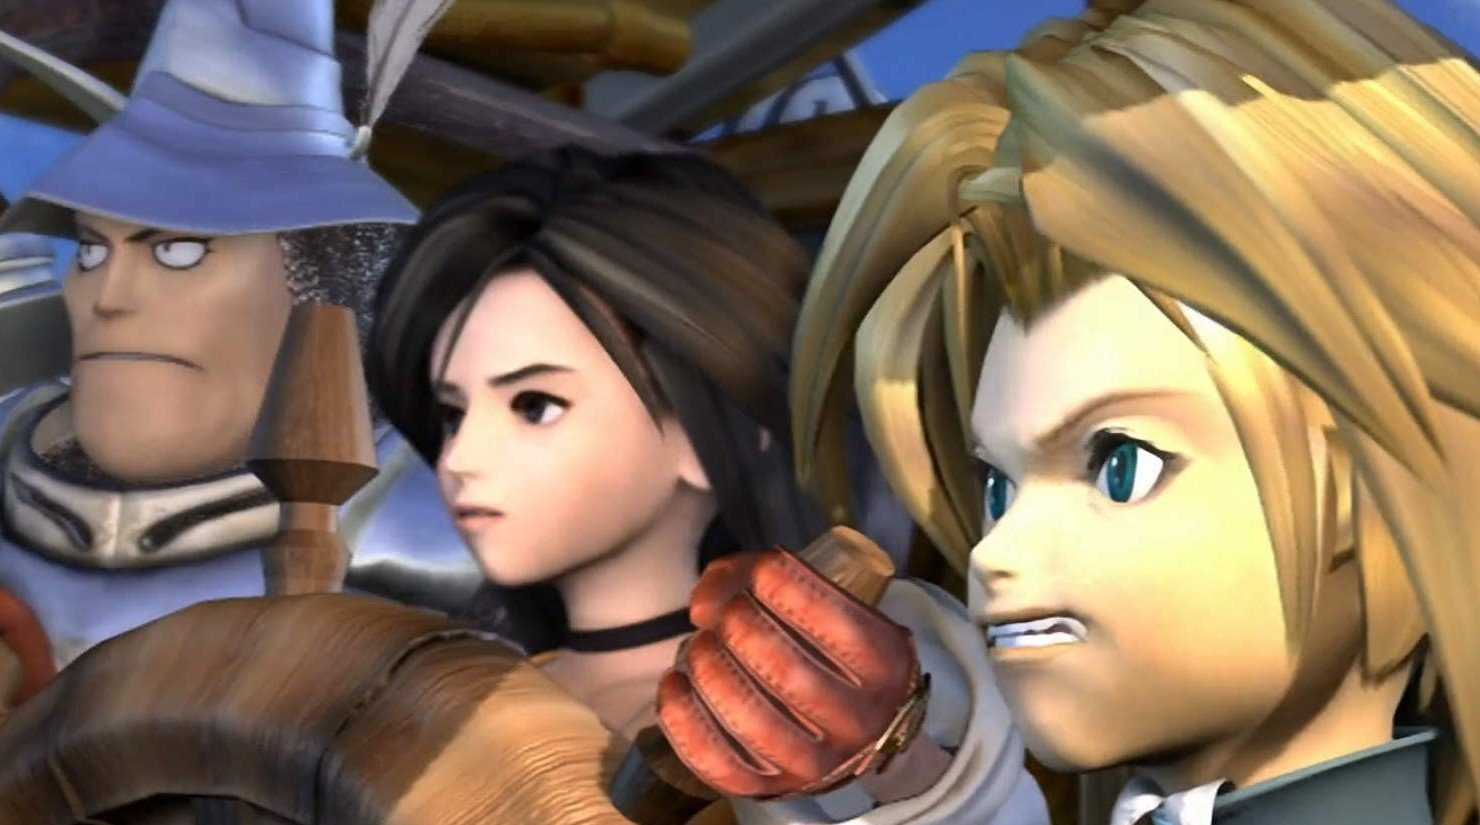 Final Fantasy IX director still feels a 'great sense of pride' for the project 20 years after launch screenshot